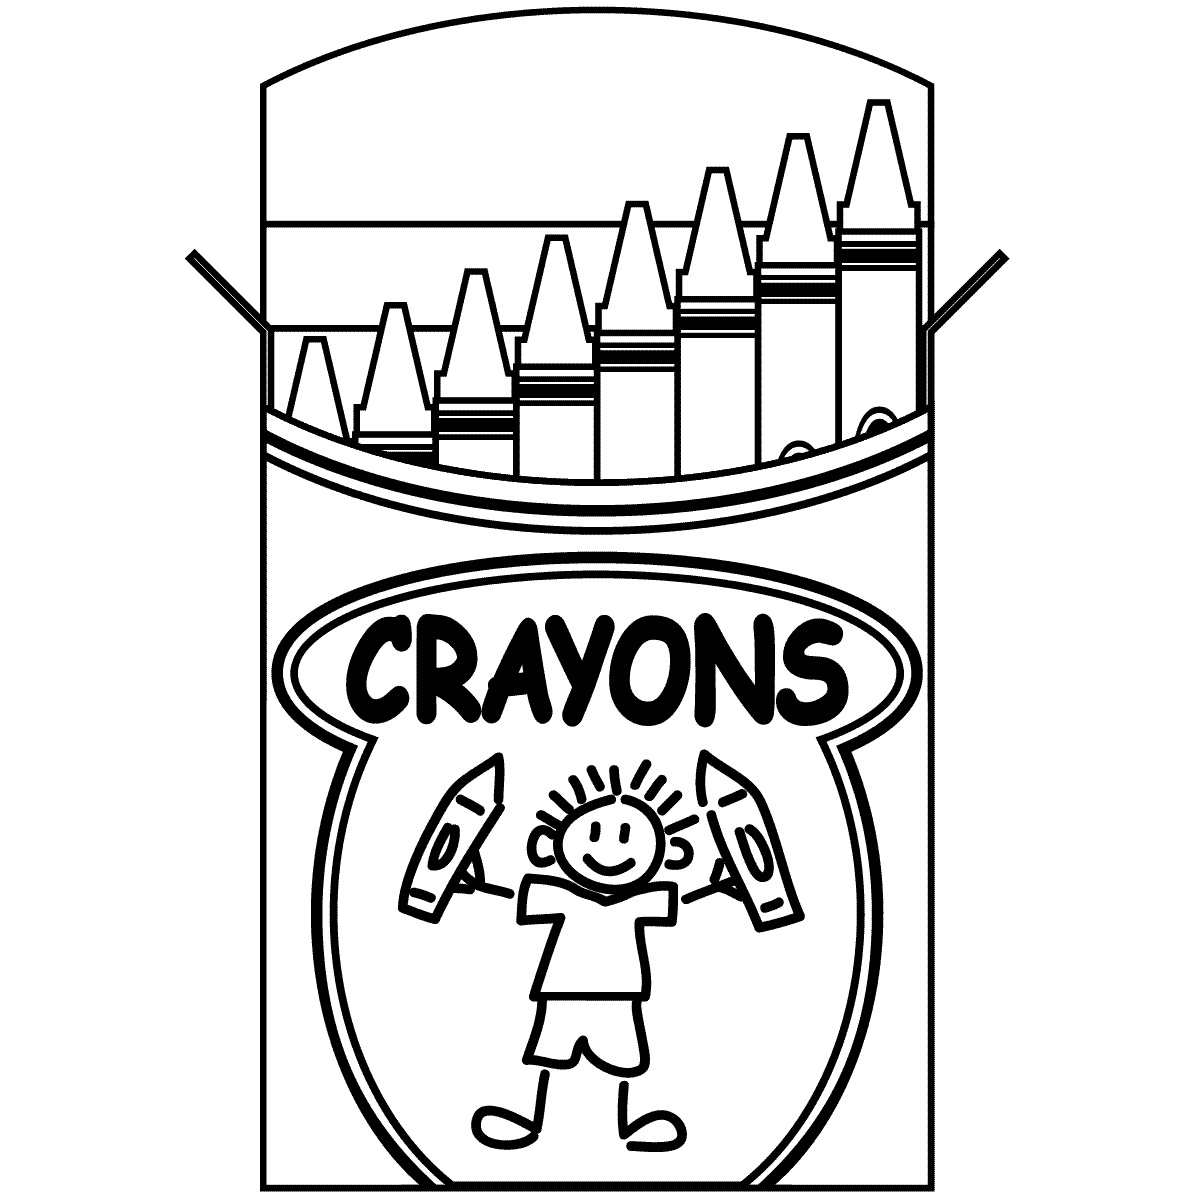 Crayon clipart black and white Inspirational Crayon Clip Art.